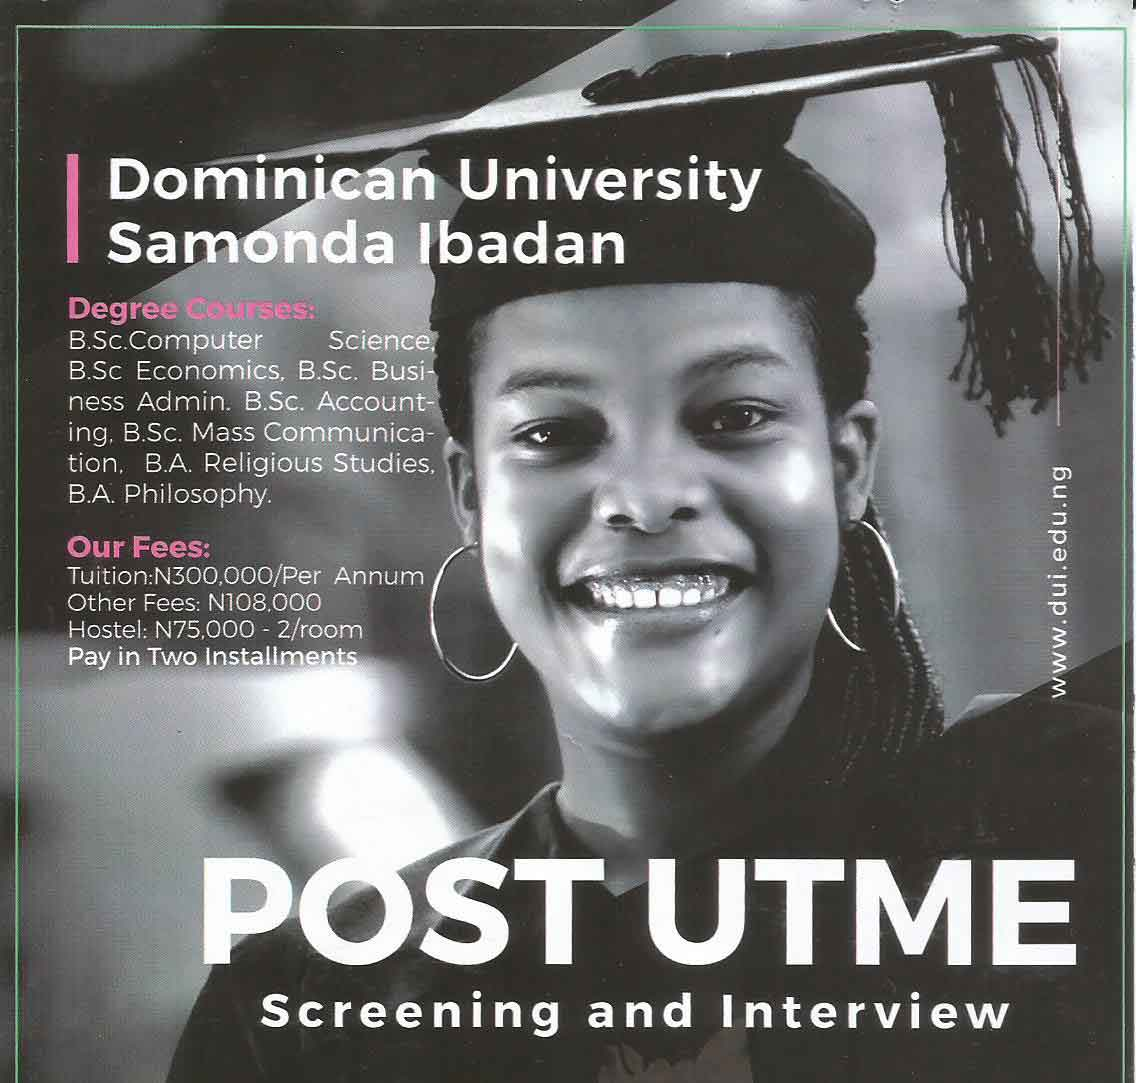 2019 Post UTME Screening and Interview – Dominican University Samonda Ibadan